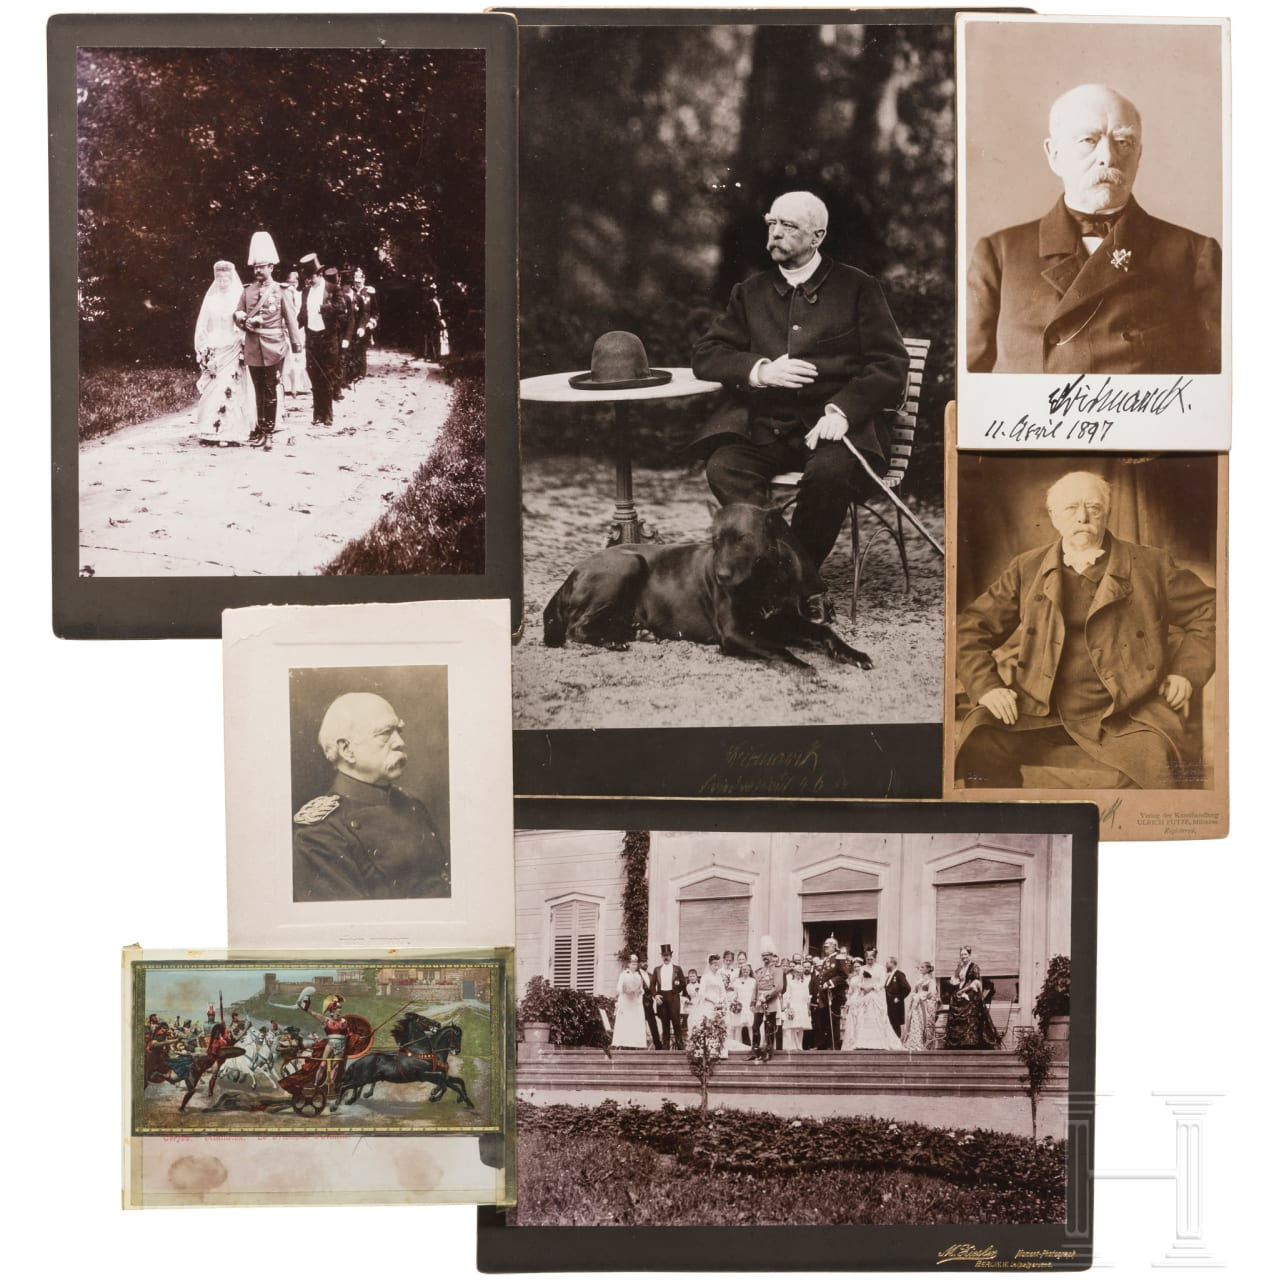 Photos and autographs of the Bismarck family